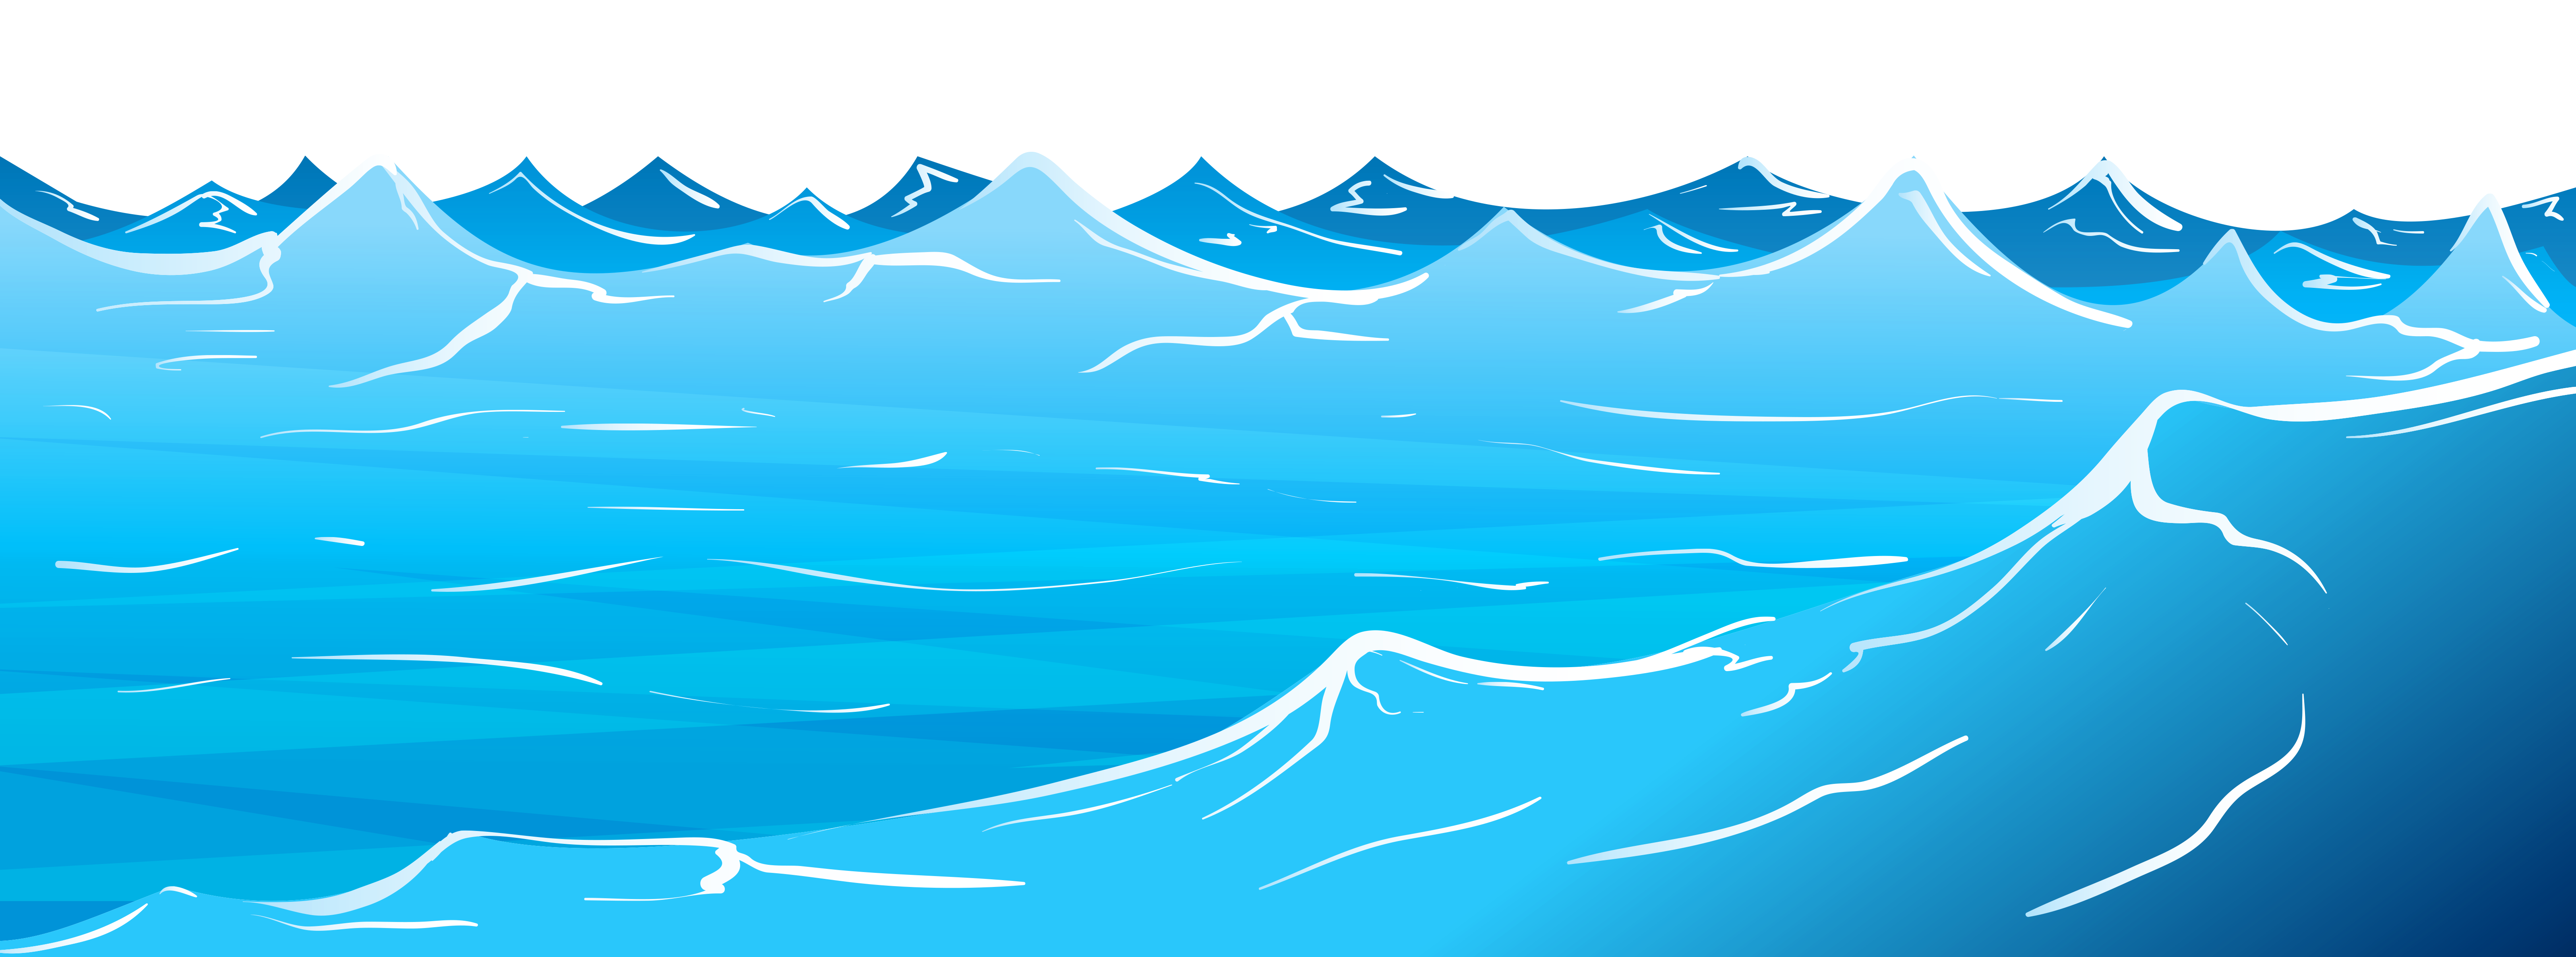 clip royalty free library Ground clipart ocean. Sea frames illustrations hd